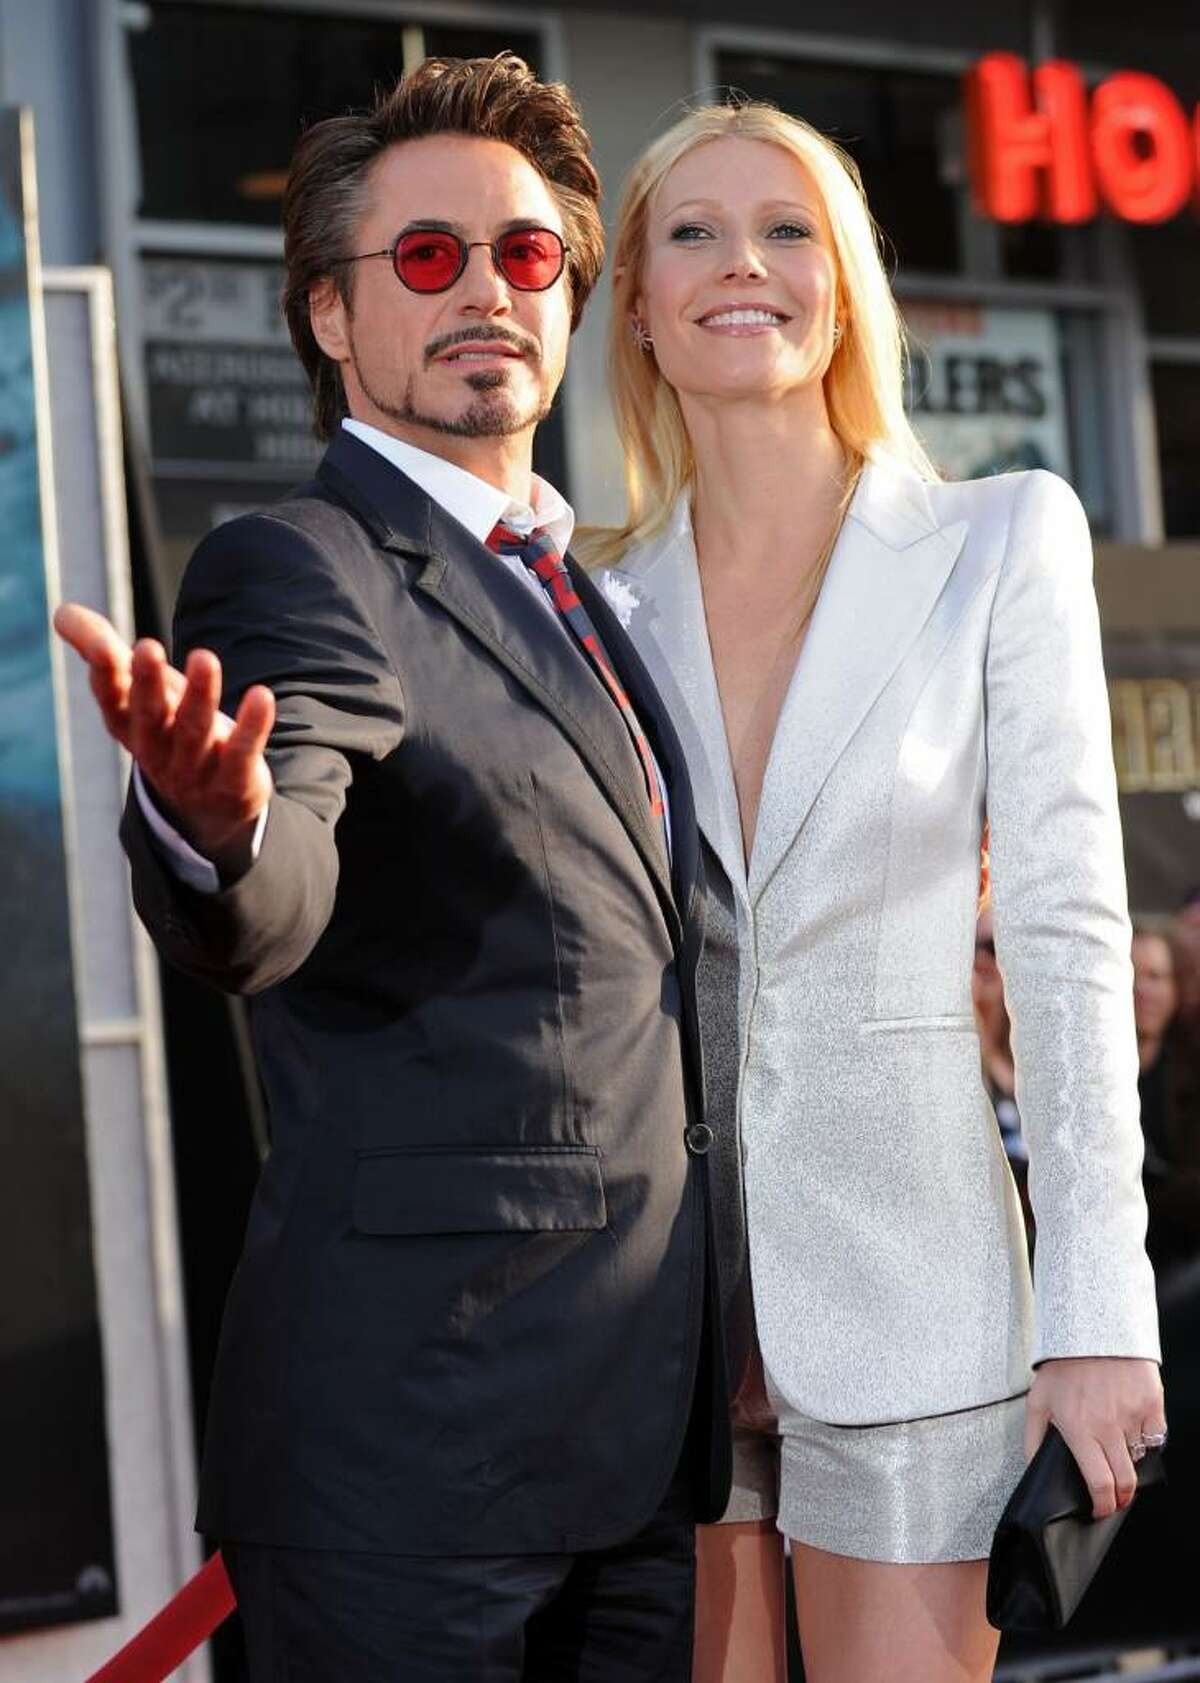 """HOLLYWOOD - APRIL 26: Actor Robert Downey Jr. and actress Gwyneth Paltrow arrive at the world premiere of Paramount Pictures and Marvel Entertainment's """"Iron Man 2"""" held at El Capitan Theatre on April 26, 2010 in Hollywood, California. (Photo by Kevin Winter/Getty Images) *** Local Caption *** Robert Downey Jr.;Gwyneth Paltrow"""